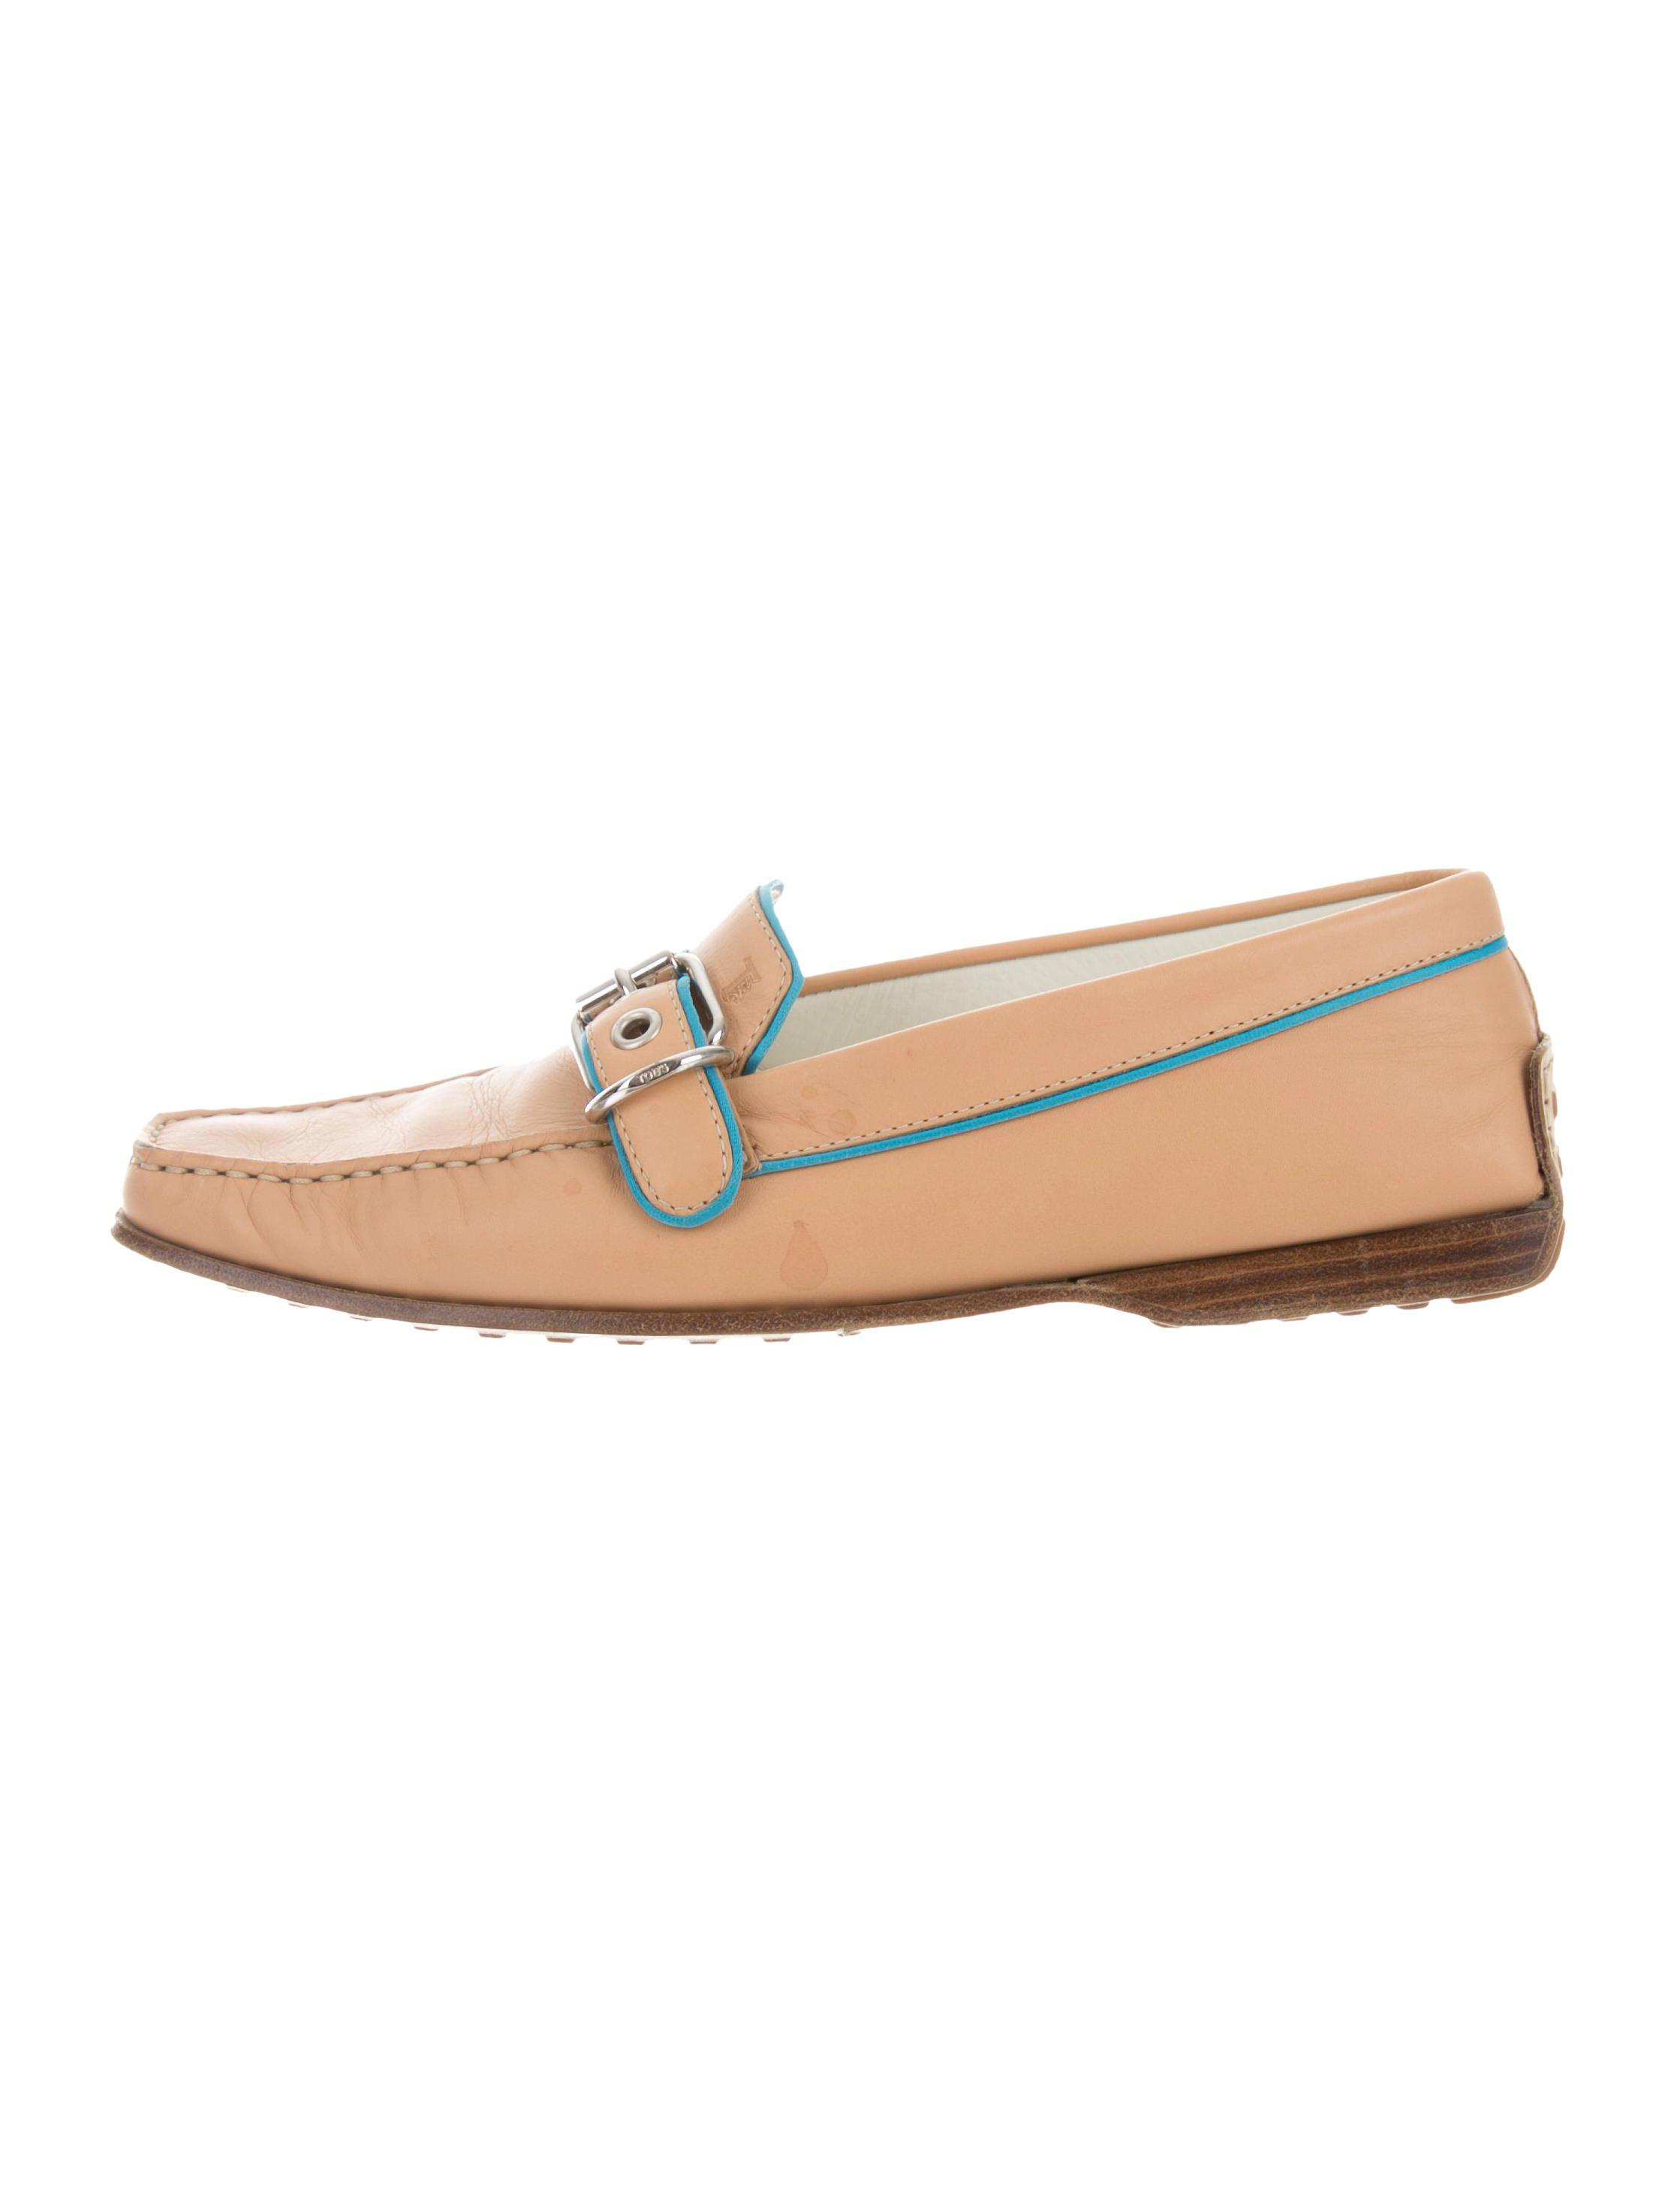 Tod's Buckle-Accented Square-Toe Loafers cheap sale online RYU01qB8